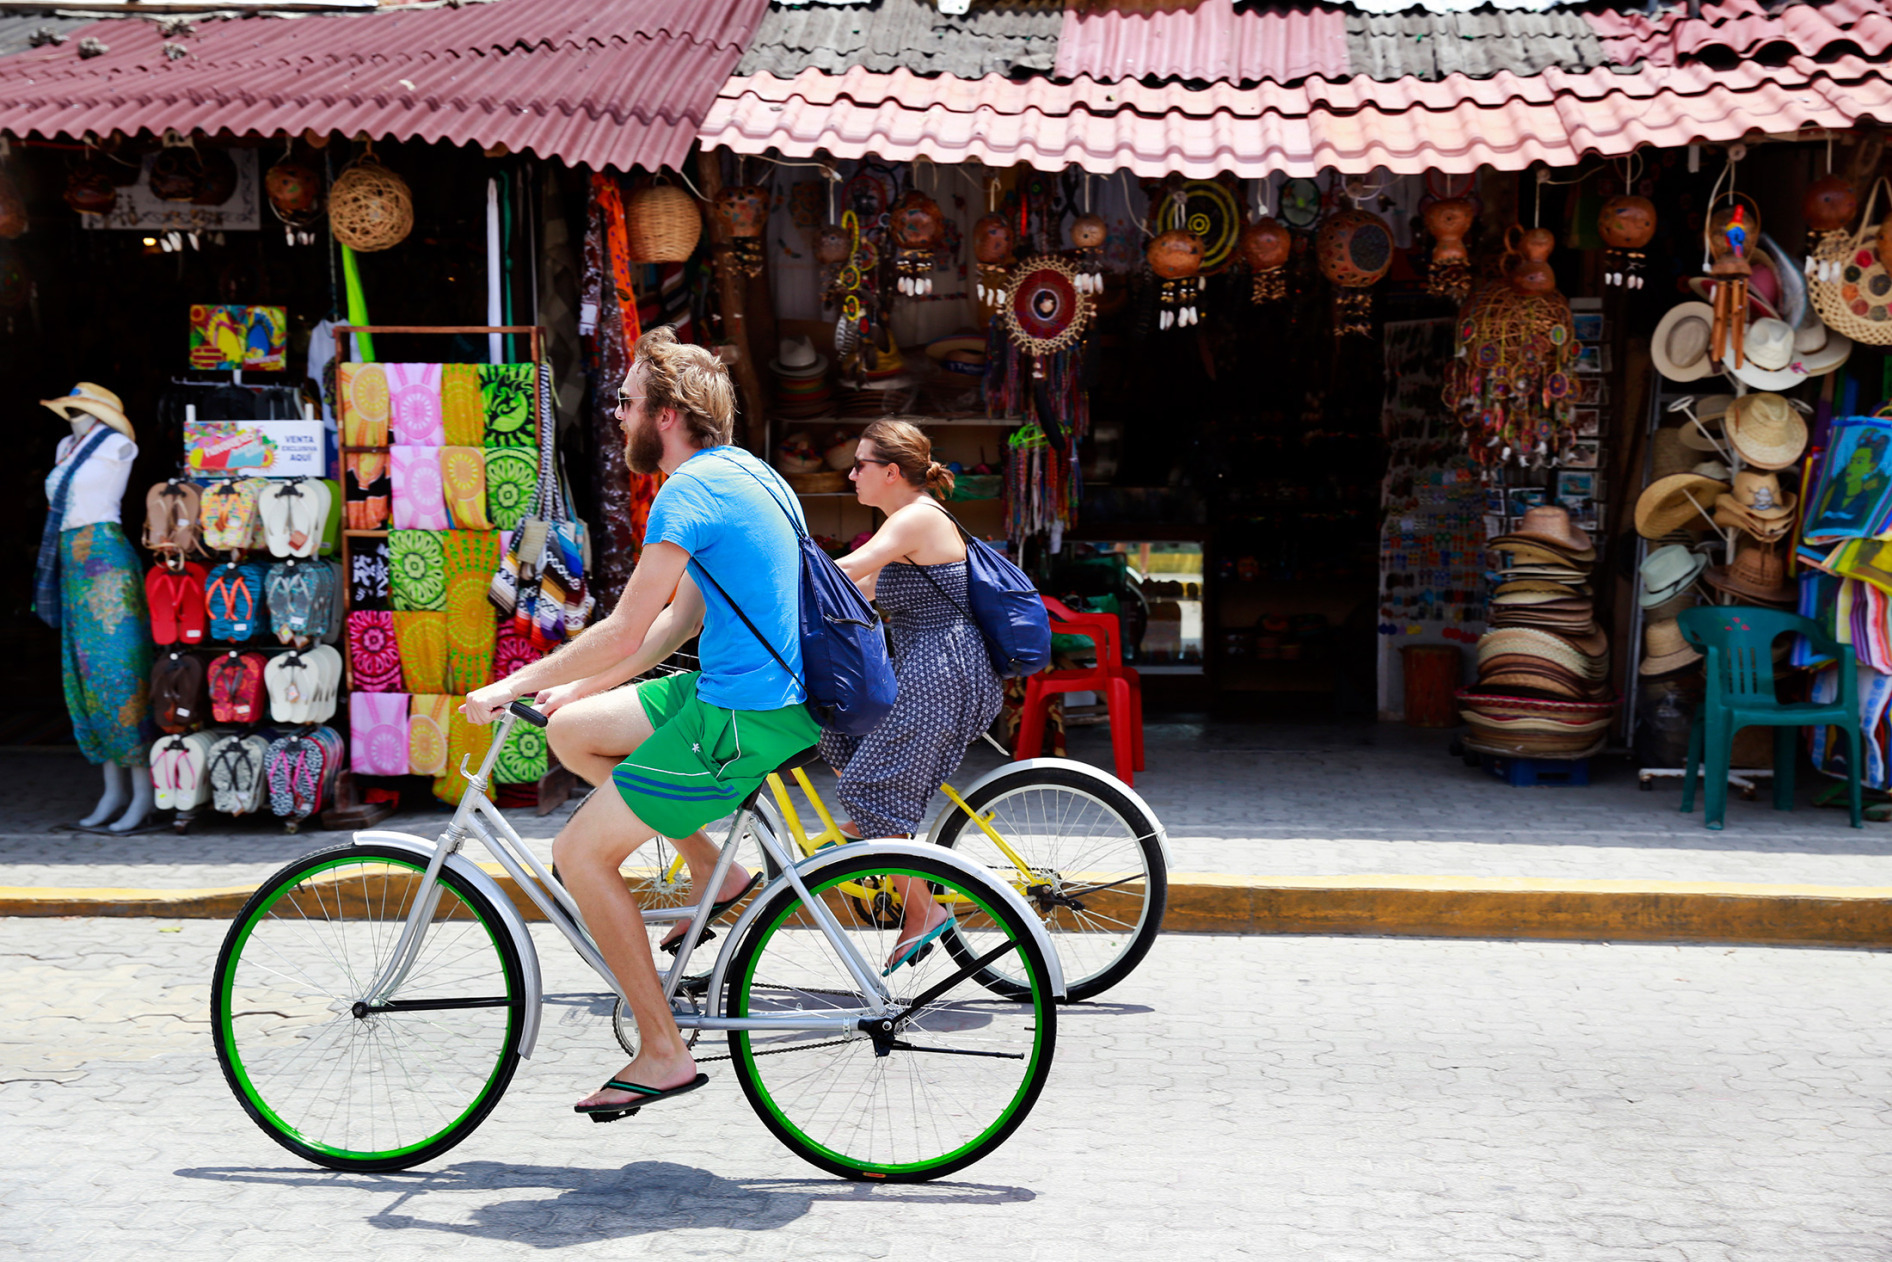 Visitors bike past shops in downtown Tulum, Mexico.